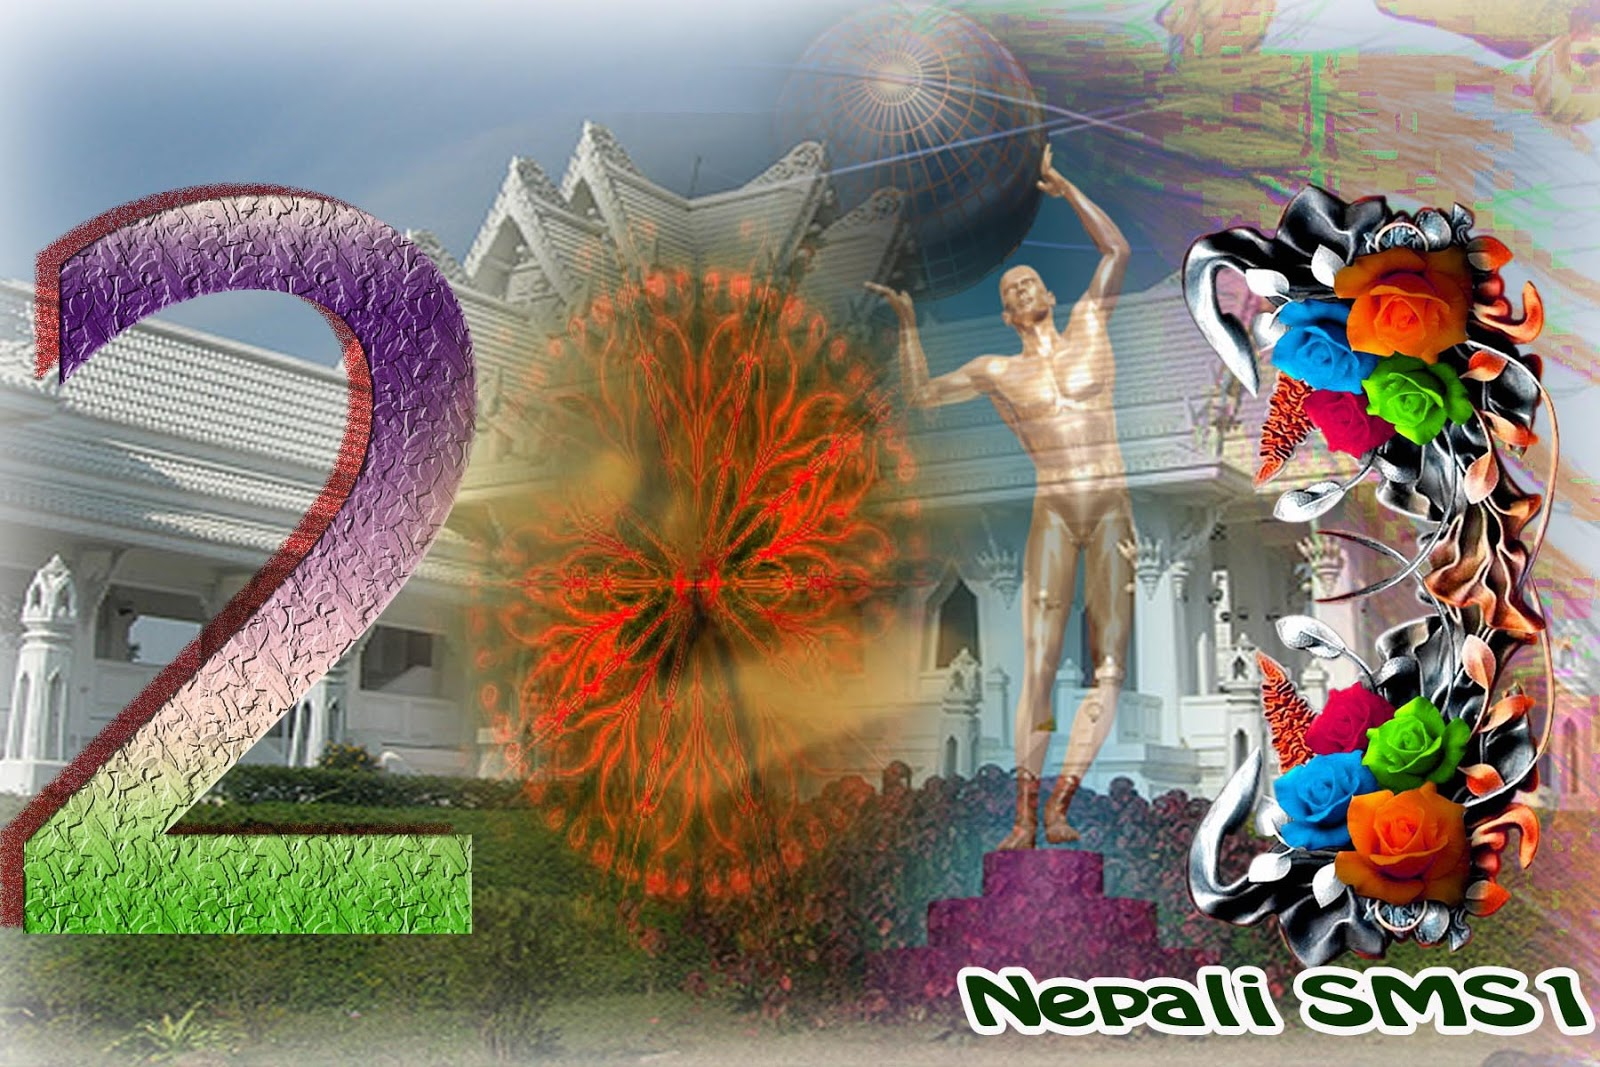 Nepali & Hindi SMS Collection : New Year SMS